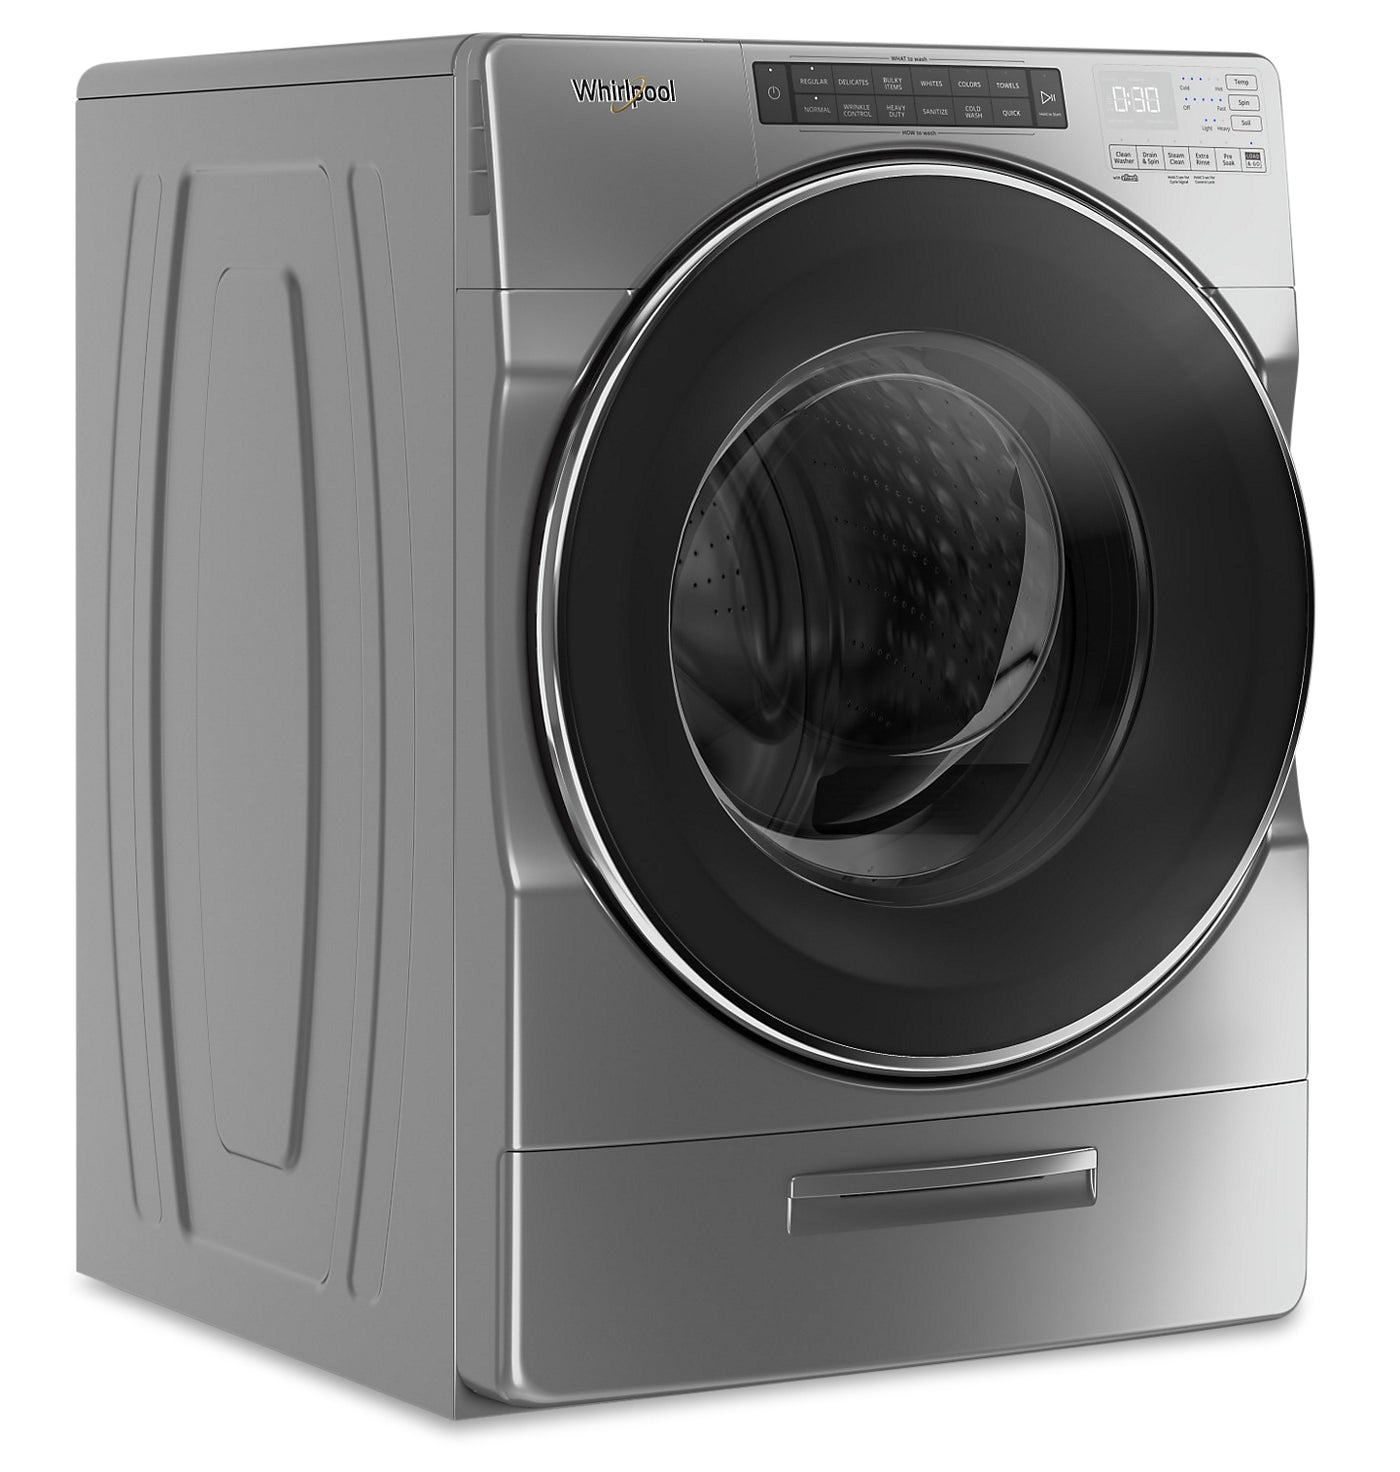 Whirlpool 5 2 Cu Ft Closet Depth Front Load Washer With